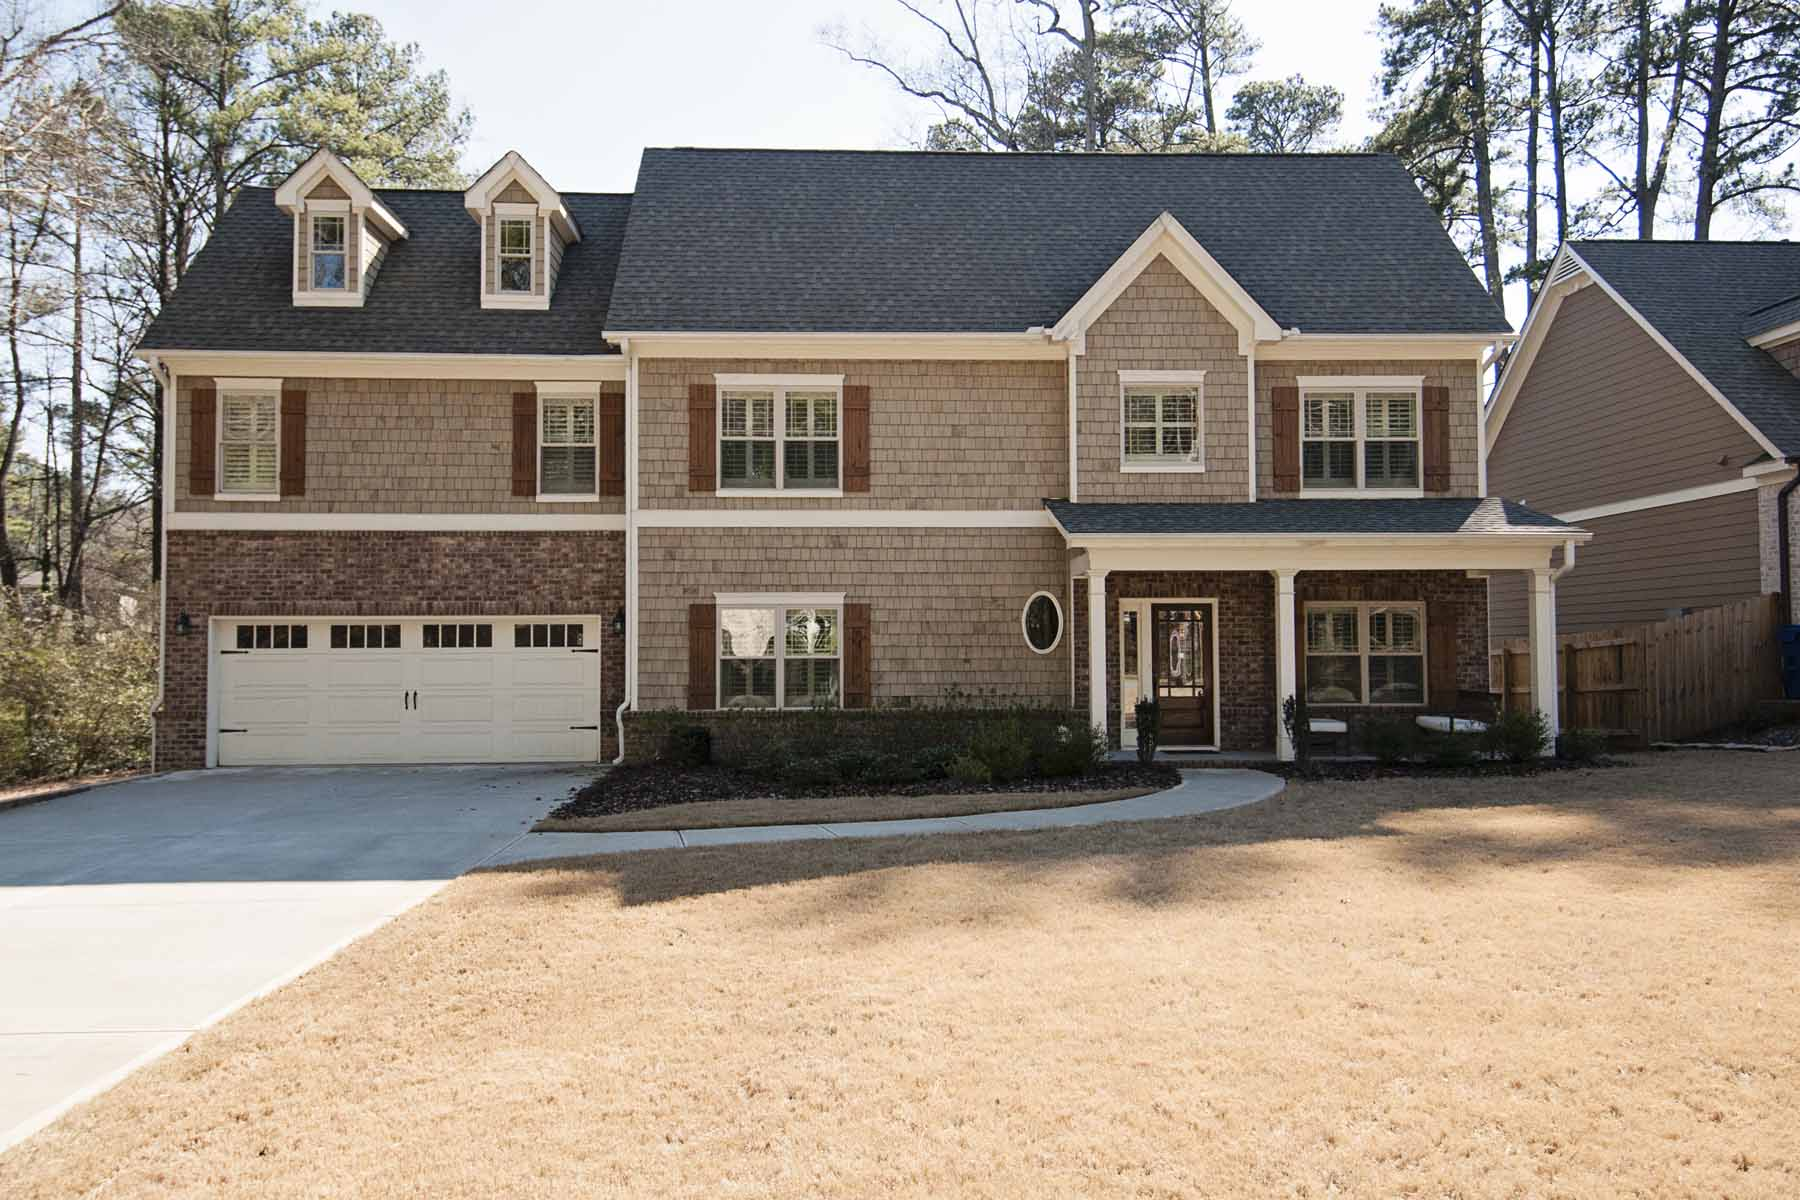 Single Family Home for Sale at Great Location! Incredible Backyard! 1813 8th Street Ashford Park, Atlanta, Georgia, 30341 United States